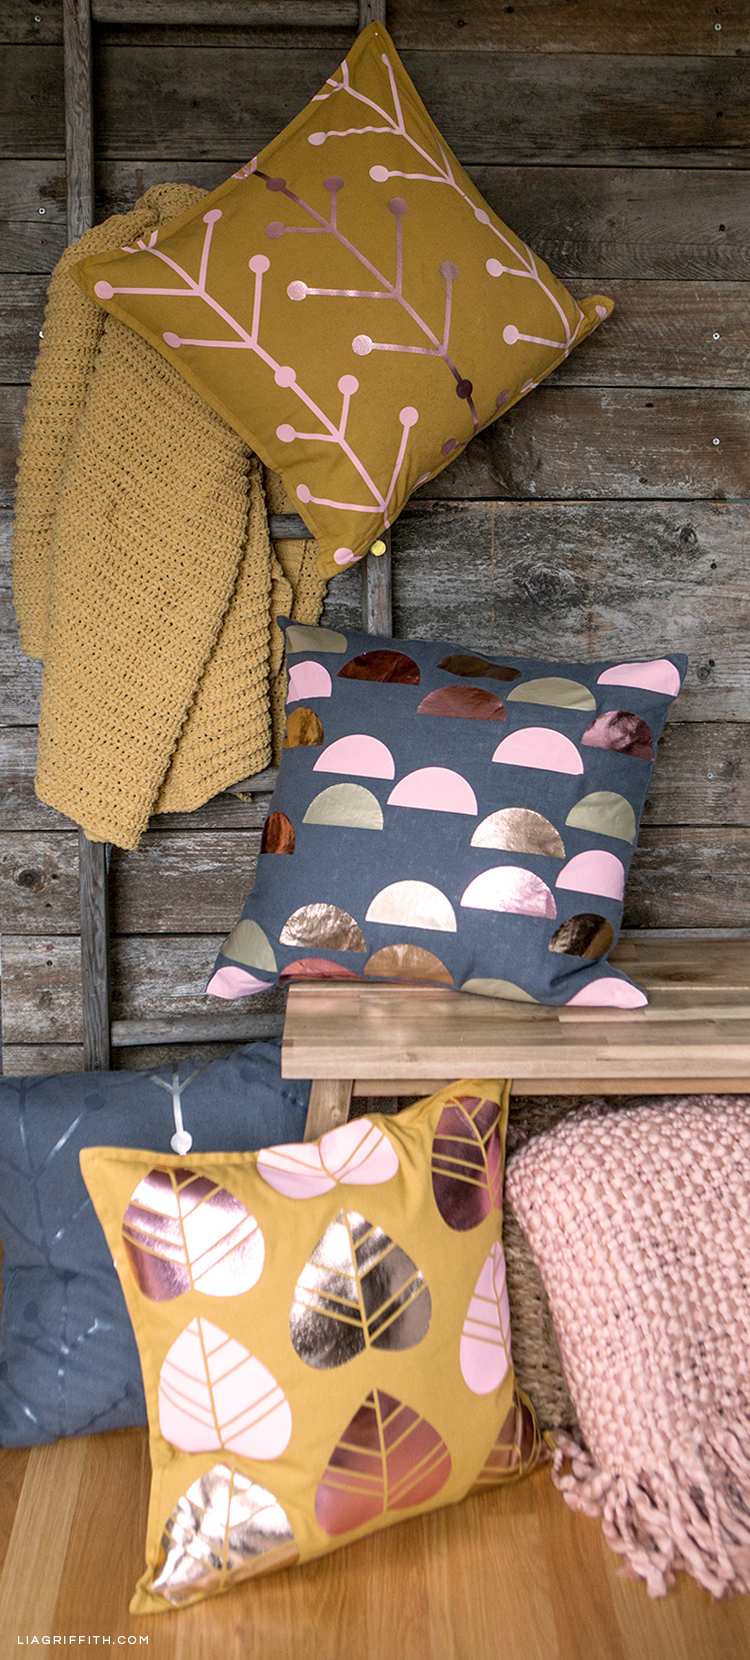 Scandinavian style outdoor pillows